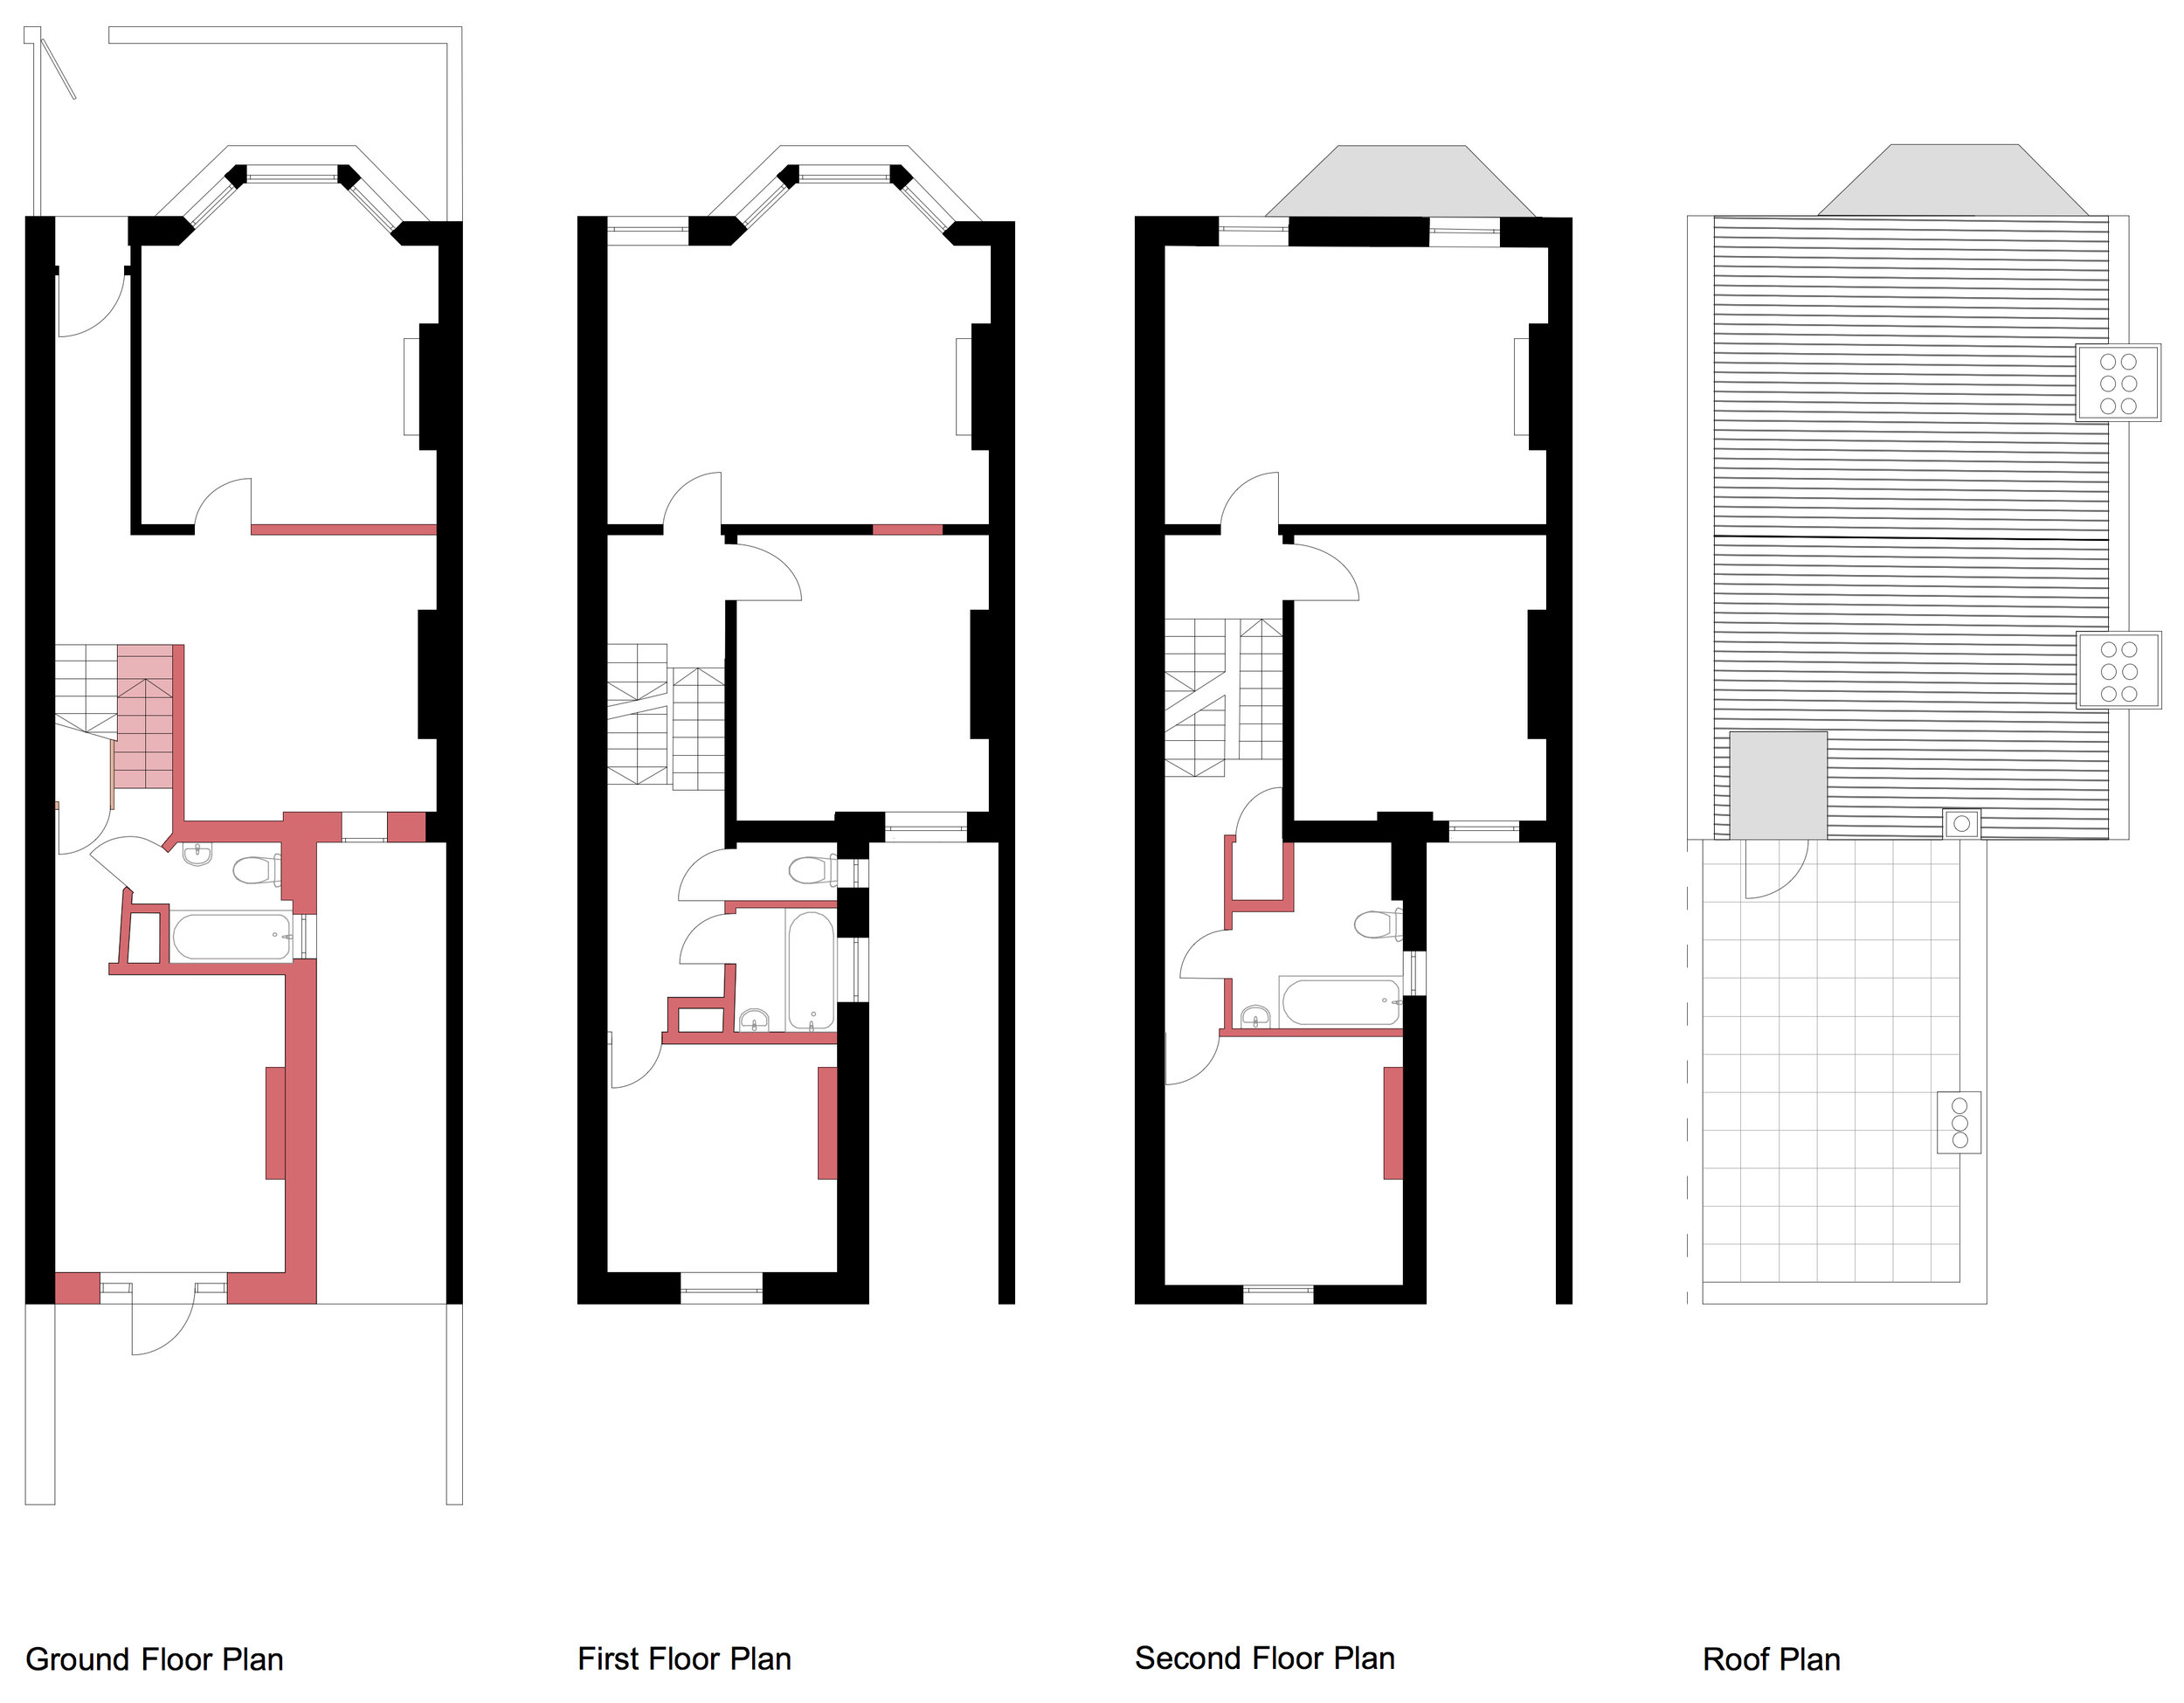 Existing Plans